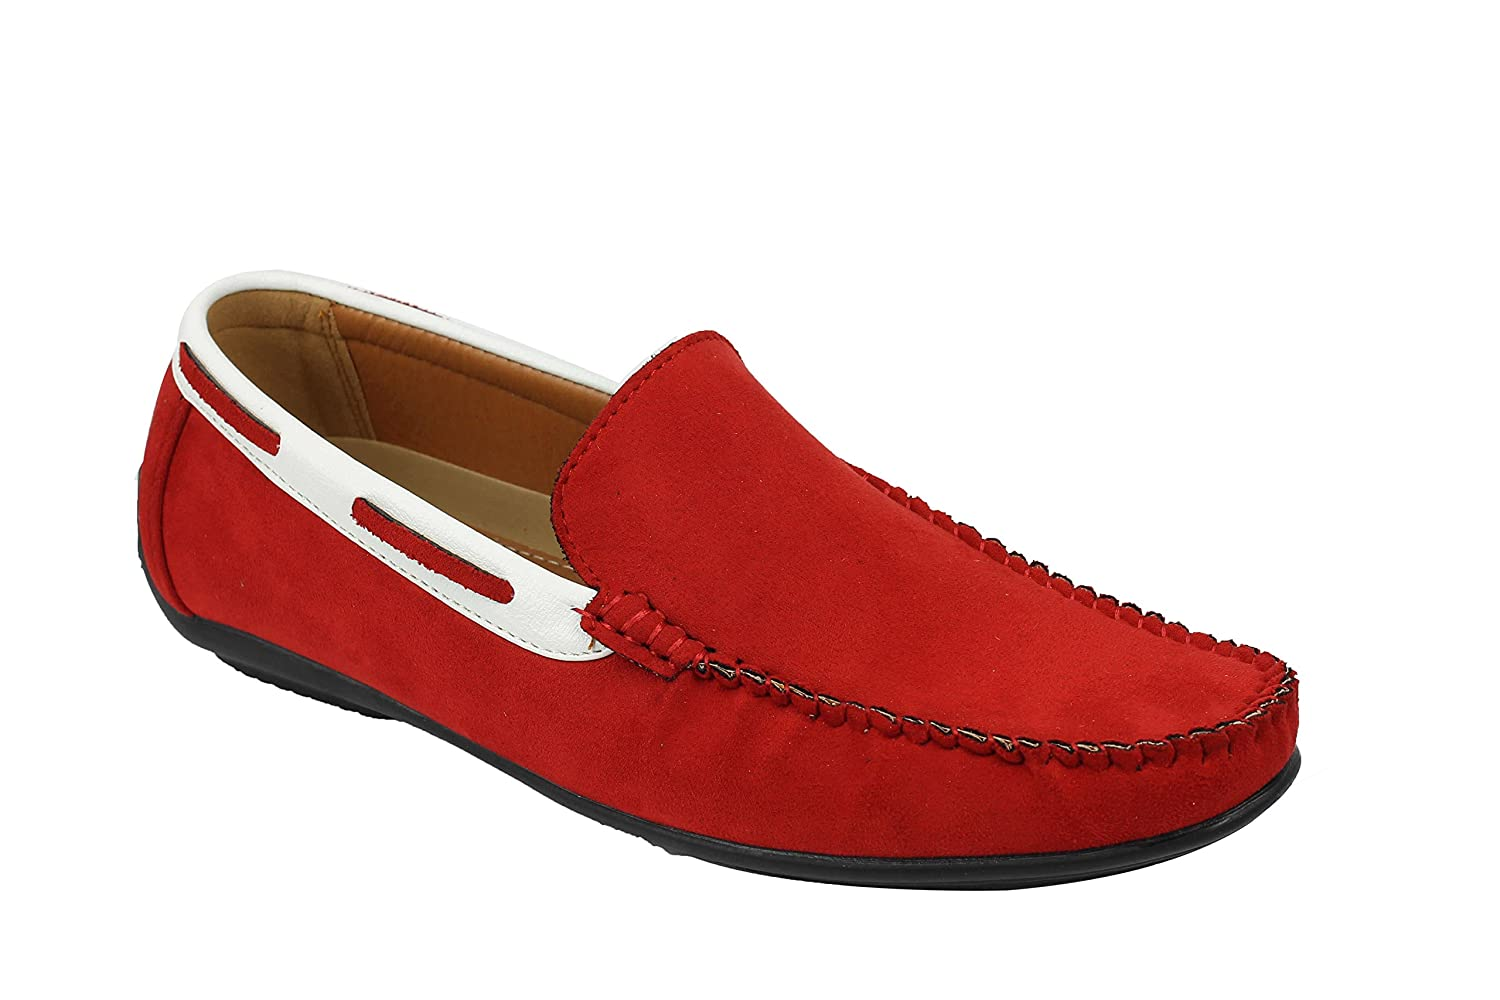 Mens Suede Faux Leather Slip On Loafers Moccasins Smart Casual Driving Shoes In Black Navy Red